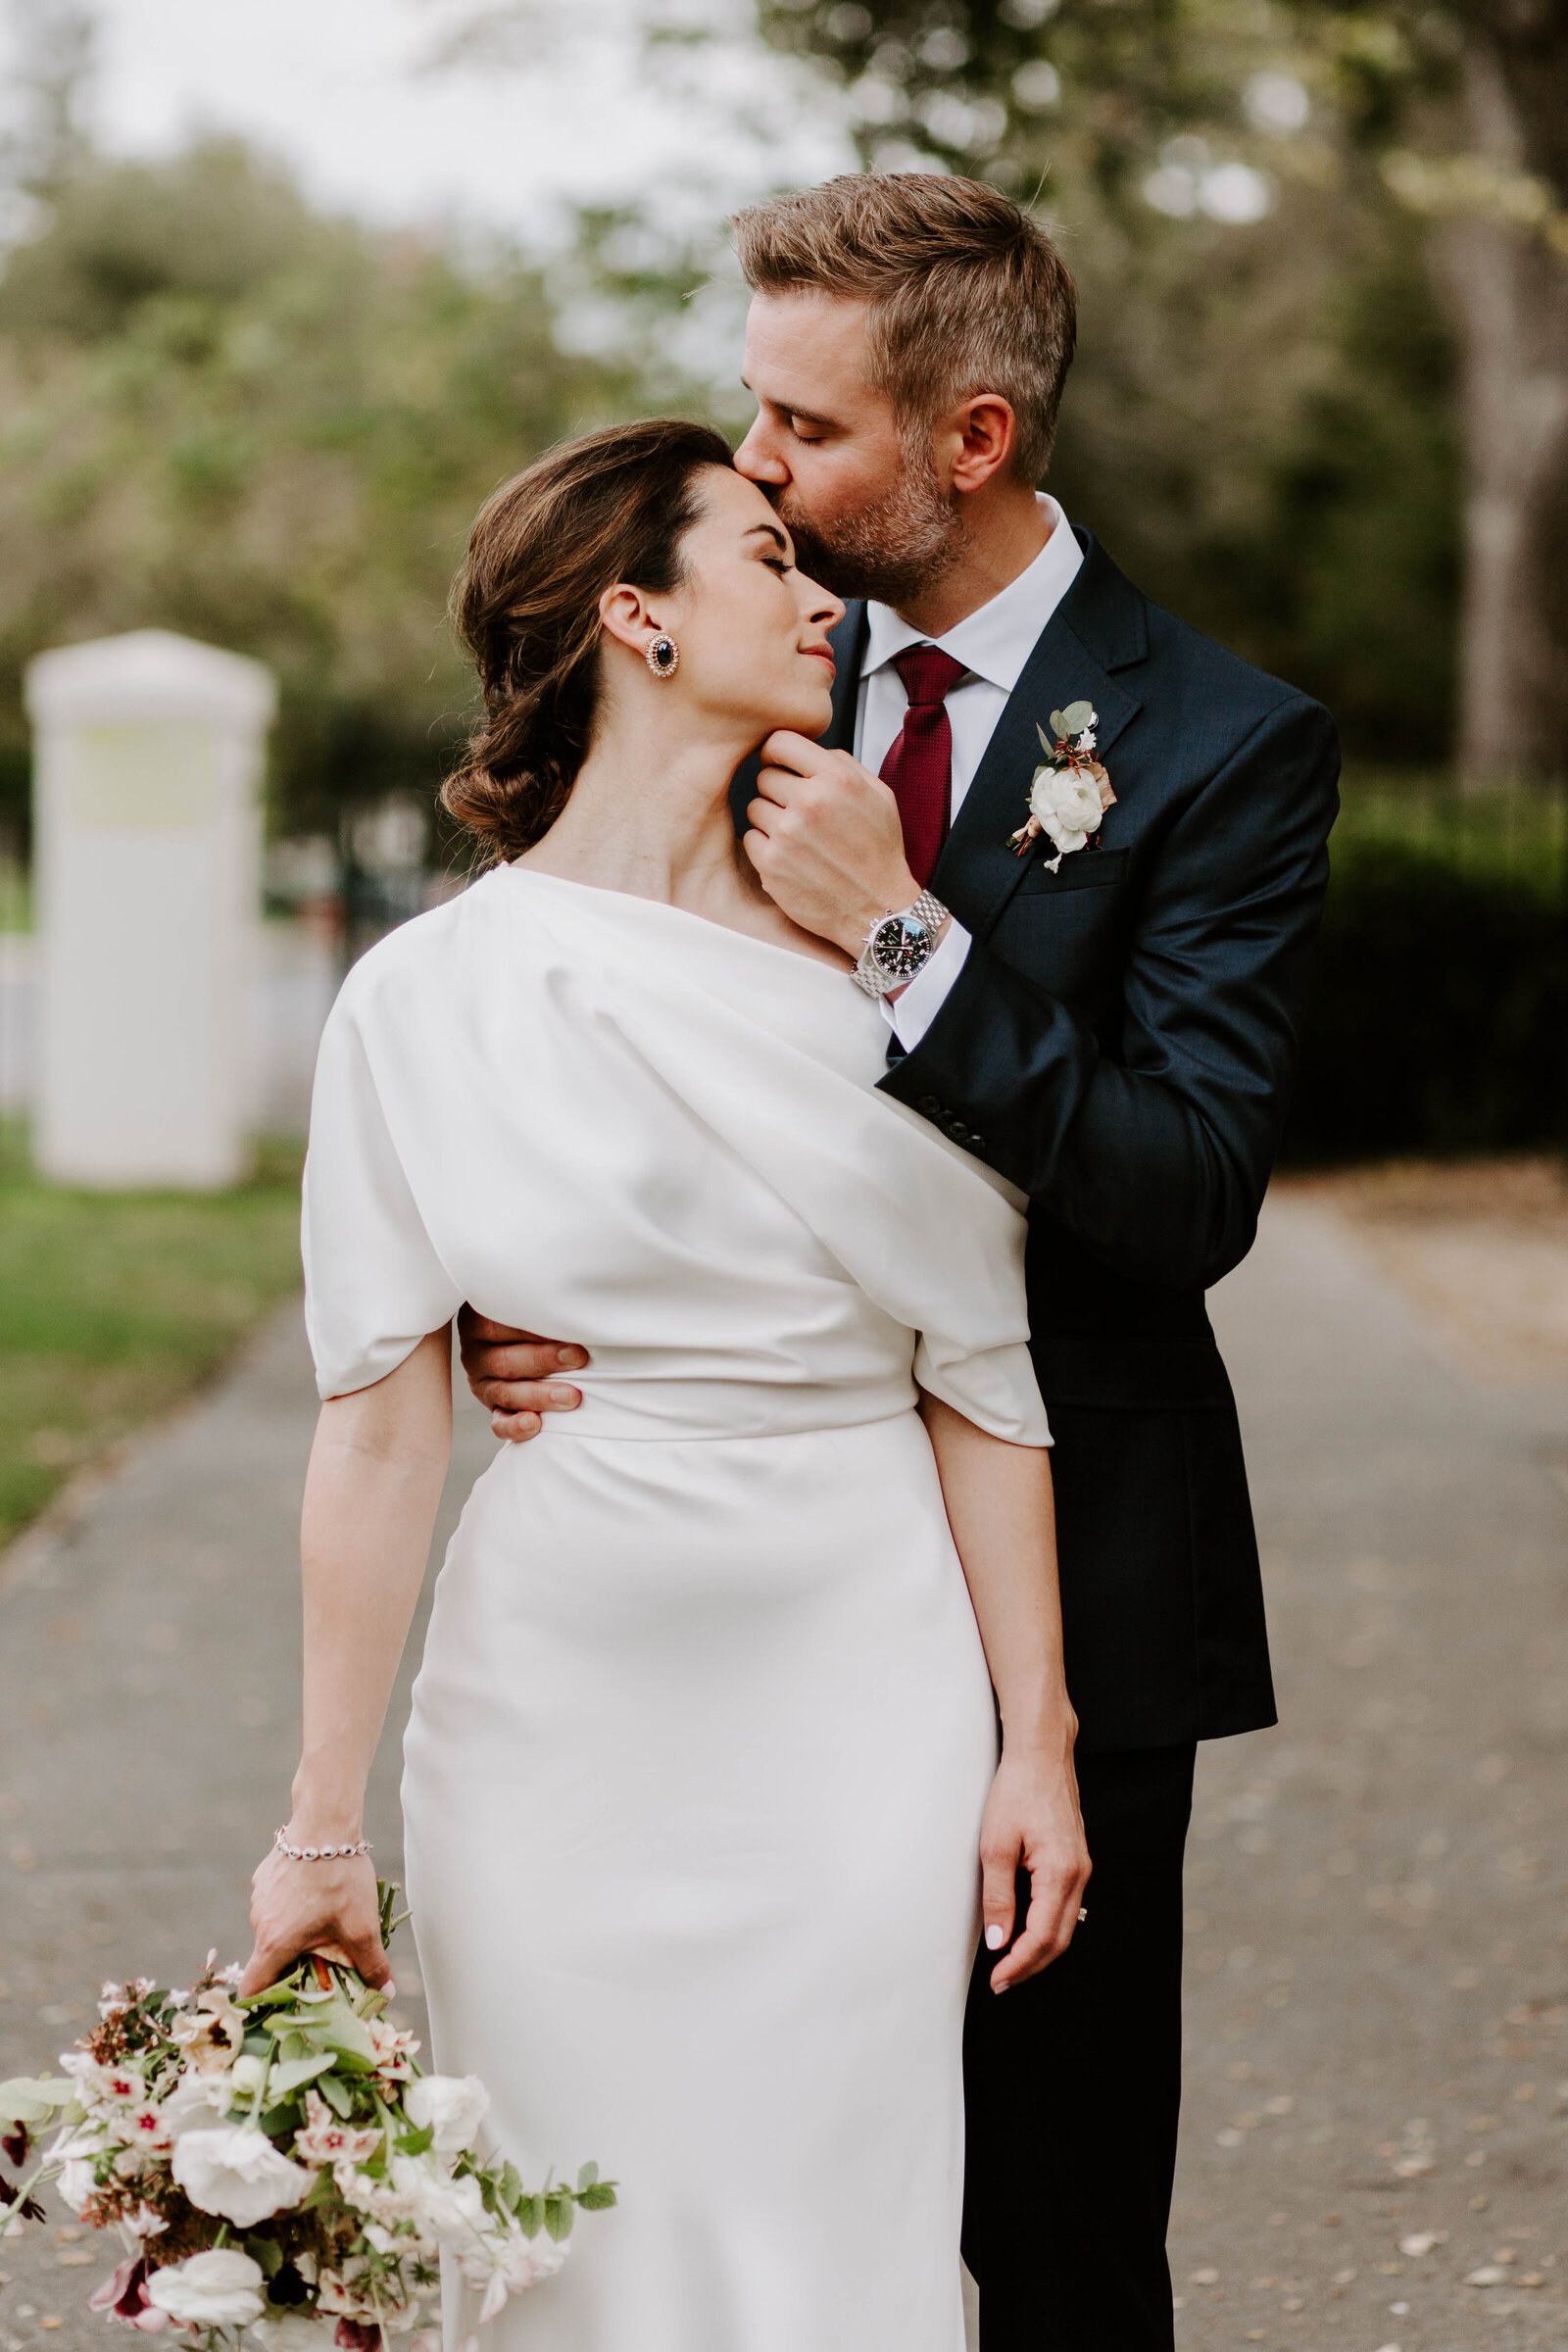 Hannah-Berglund-Photography_Audrey-Roger_Intimate-Wedding-113